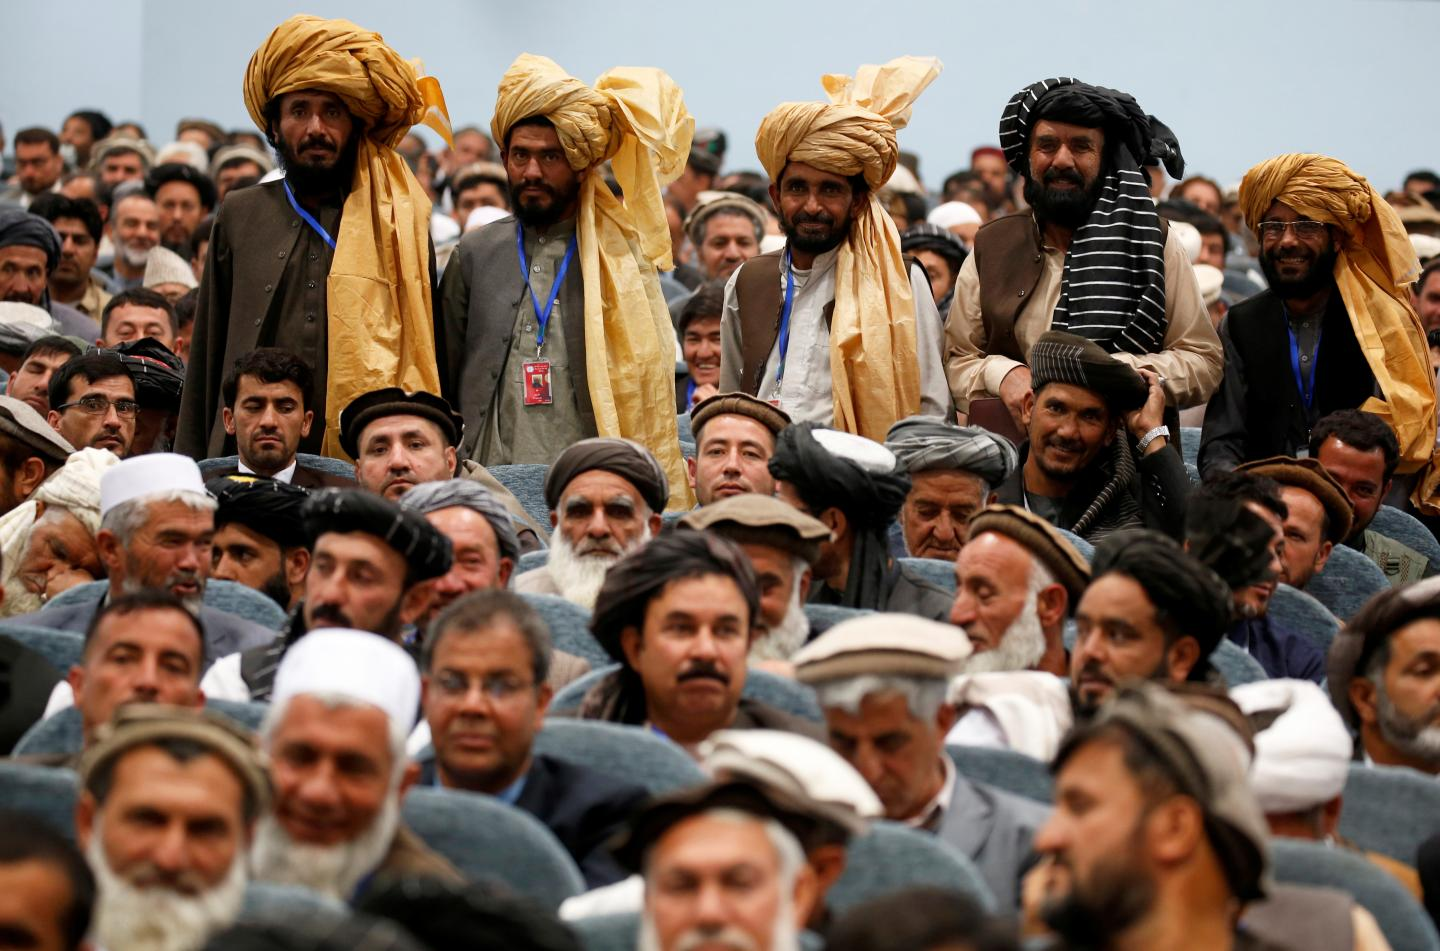 How far is Afghanistan from peace with itself?